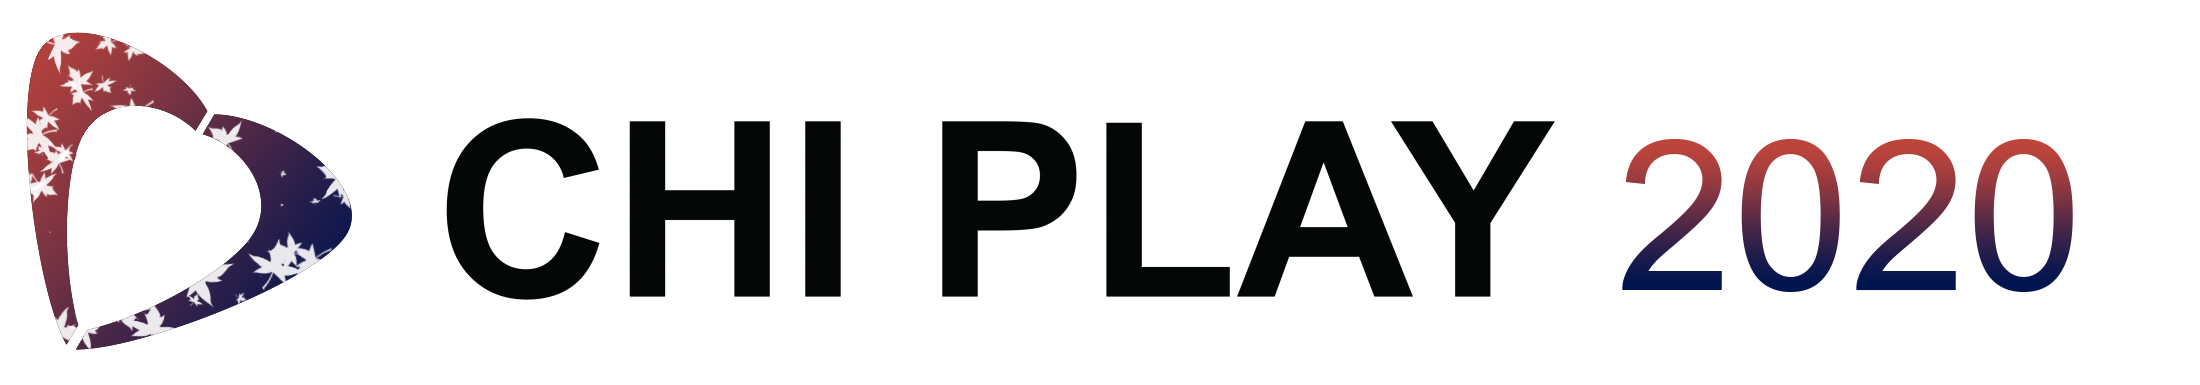 CHI PLAY 2020 (7th Annual Symposium on Computer-Human Interaction in Play)